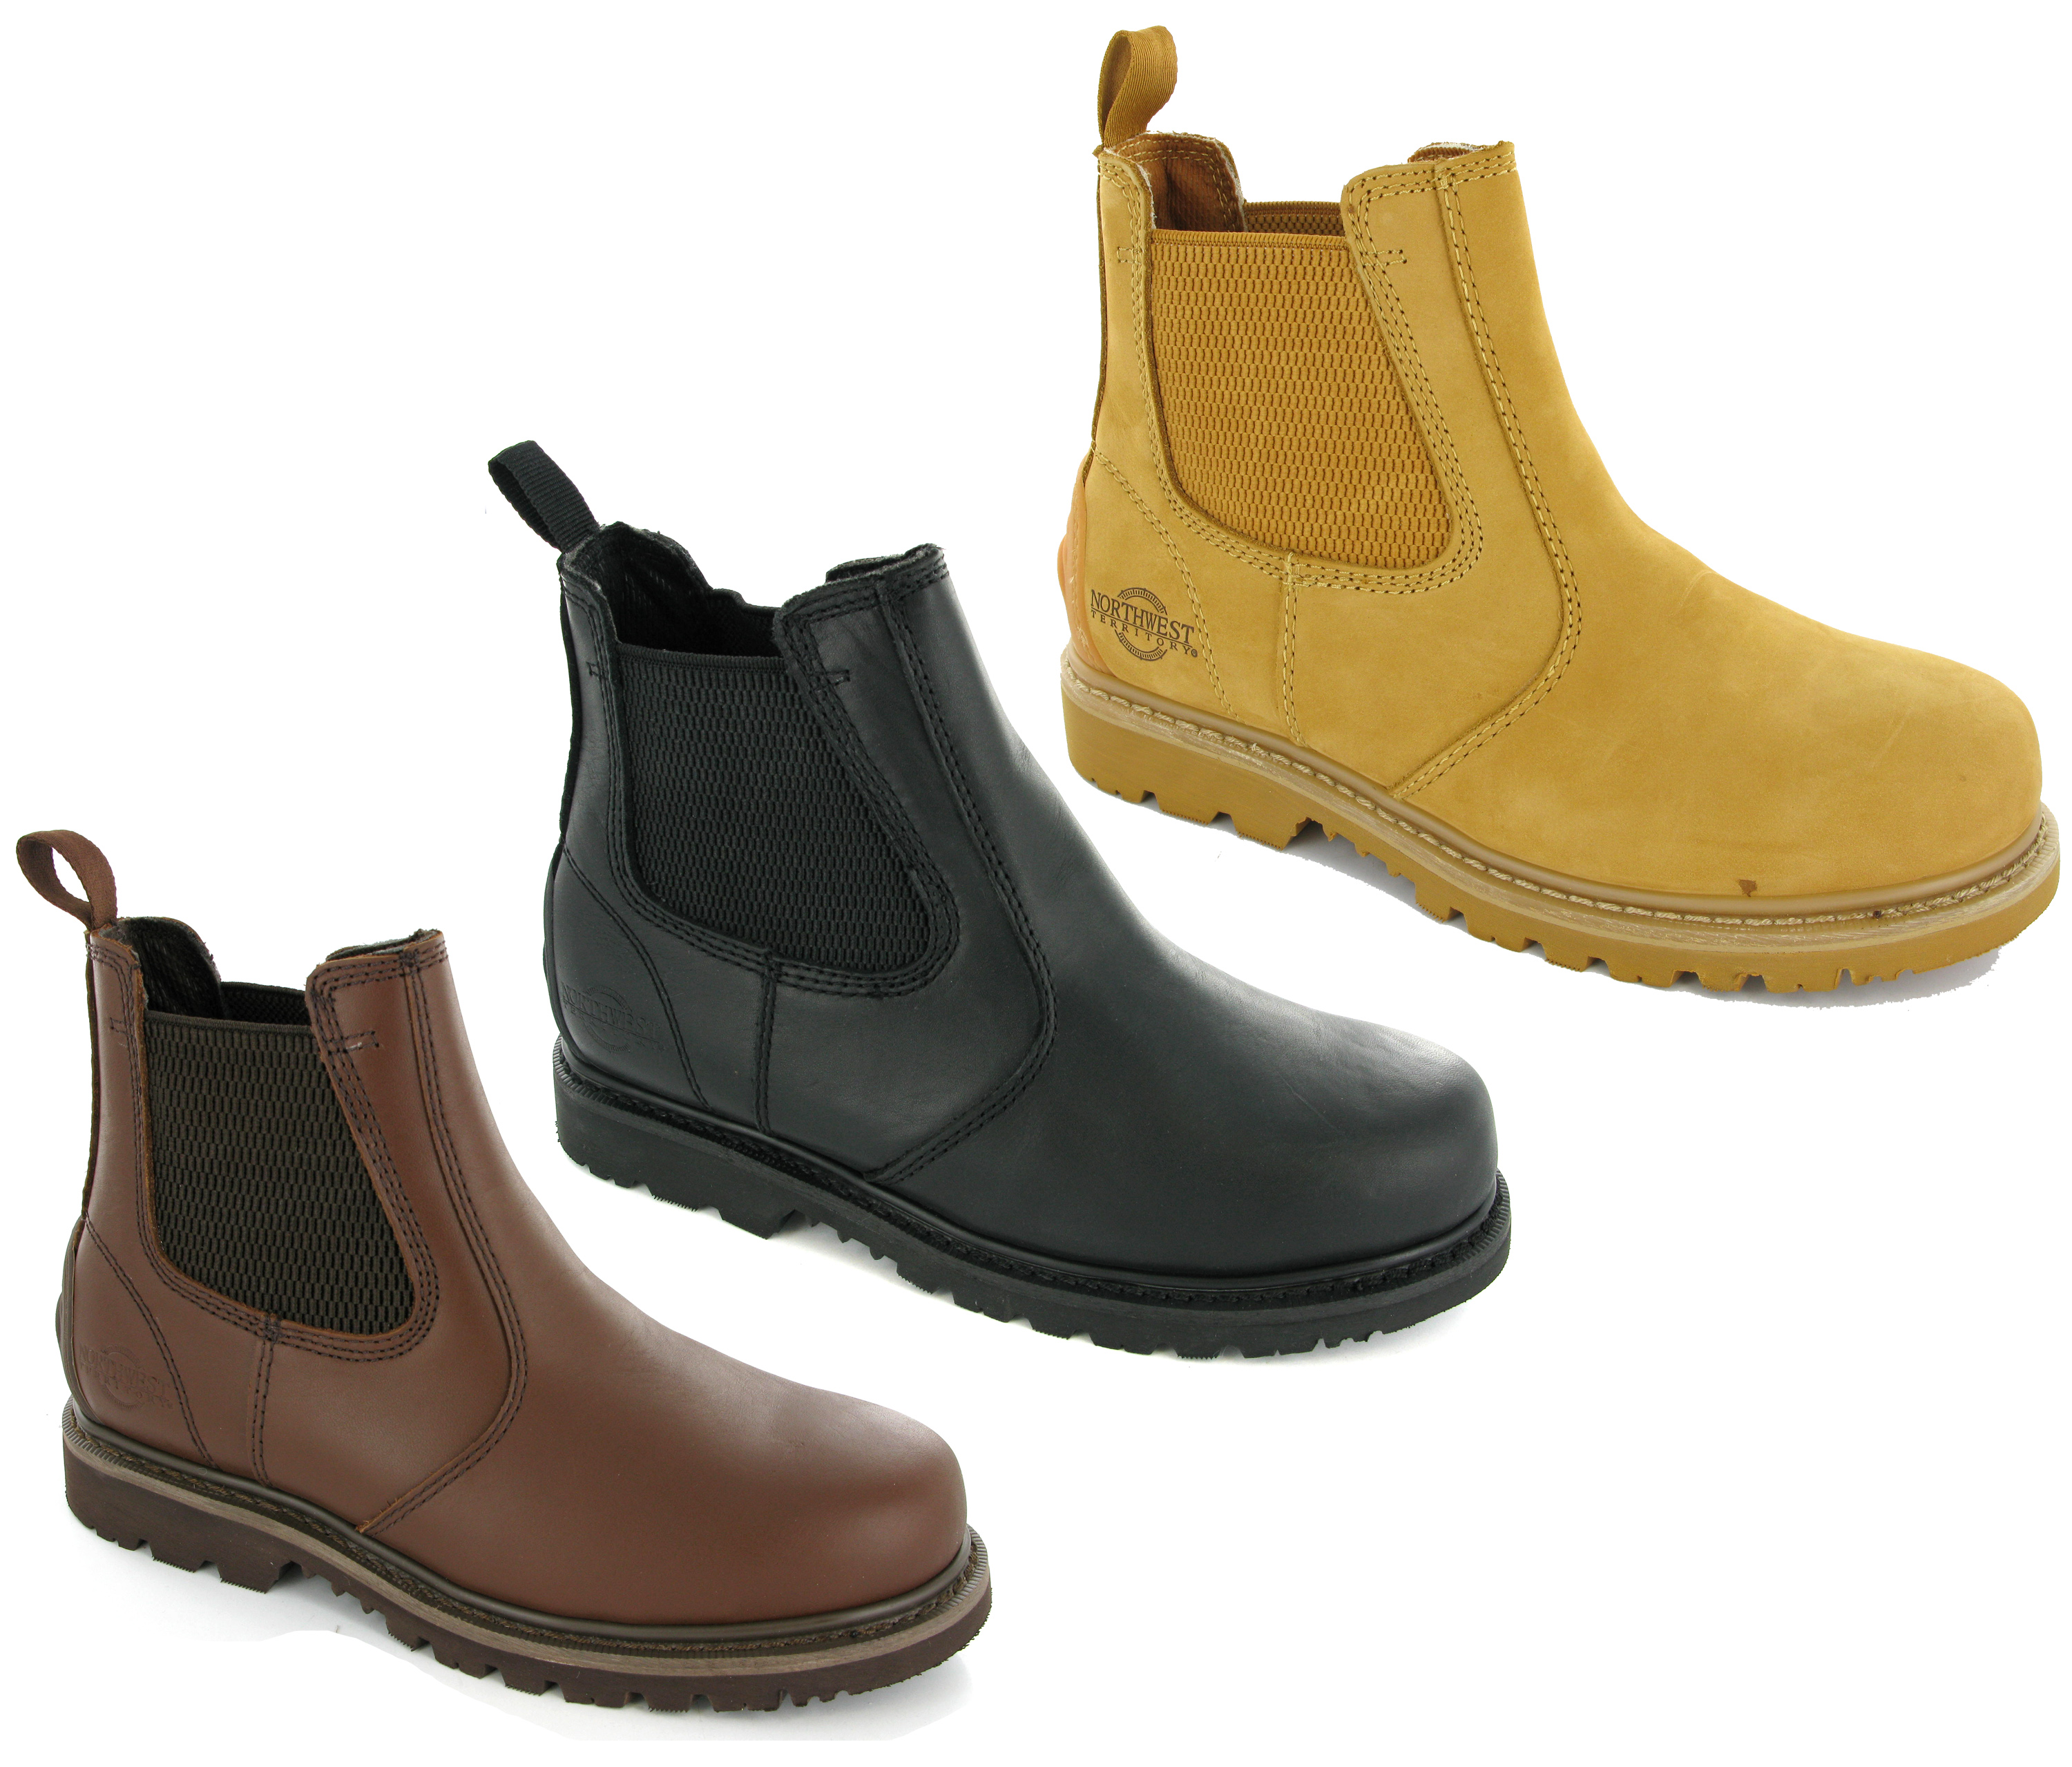 These boots are a must for all adventurers! These enviably smart, functional Rigger boots can withstand just about anything you throw at them and still look great.